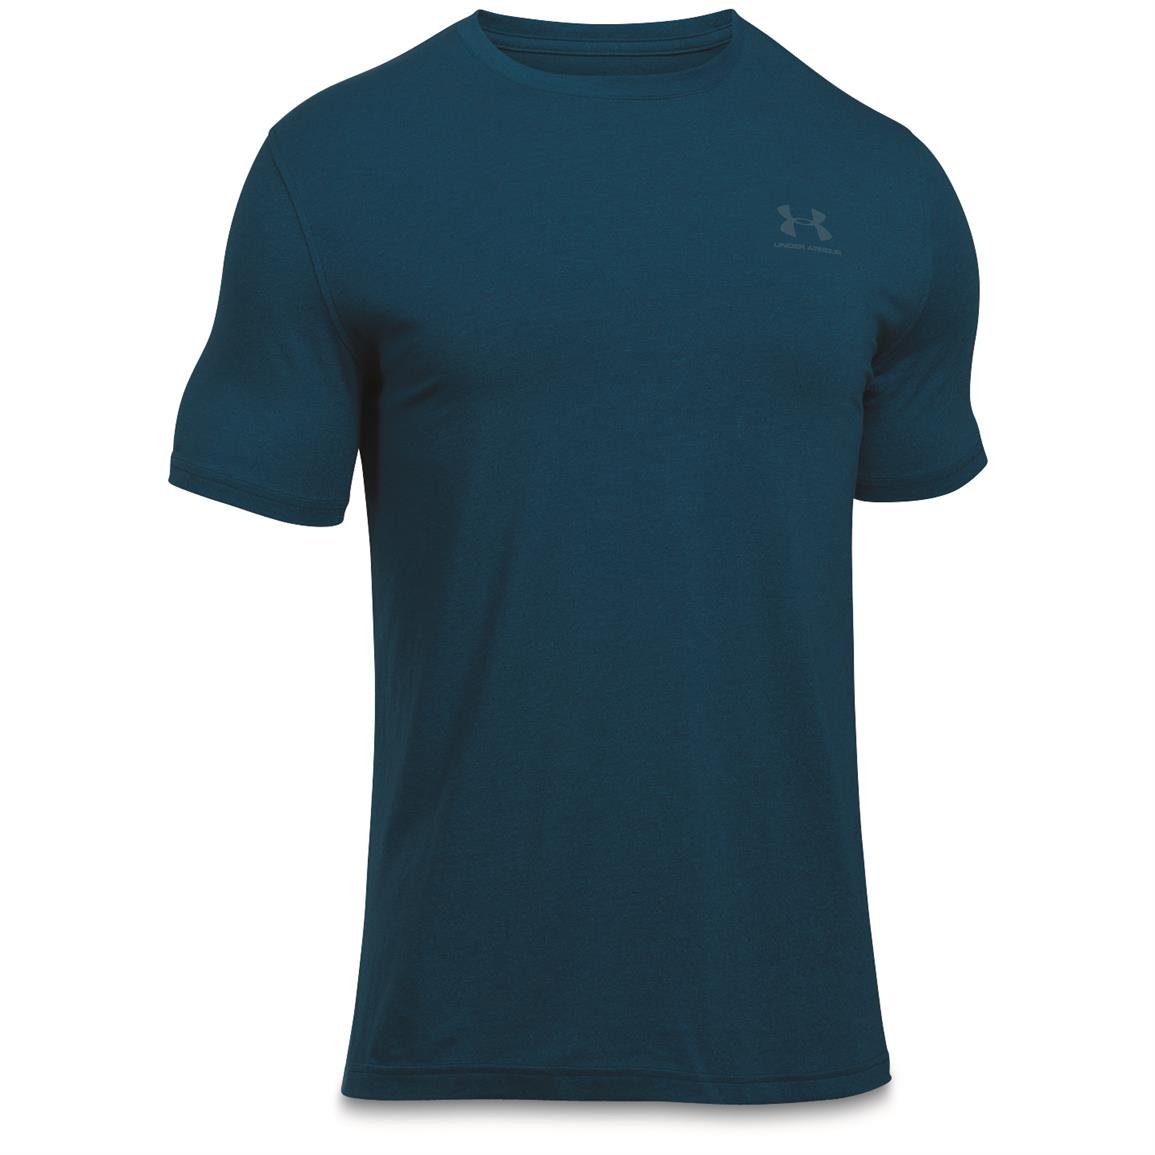 dc06301960a5 under armour tee shirts cheap   OFF54% The Largest Catalog Discounts